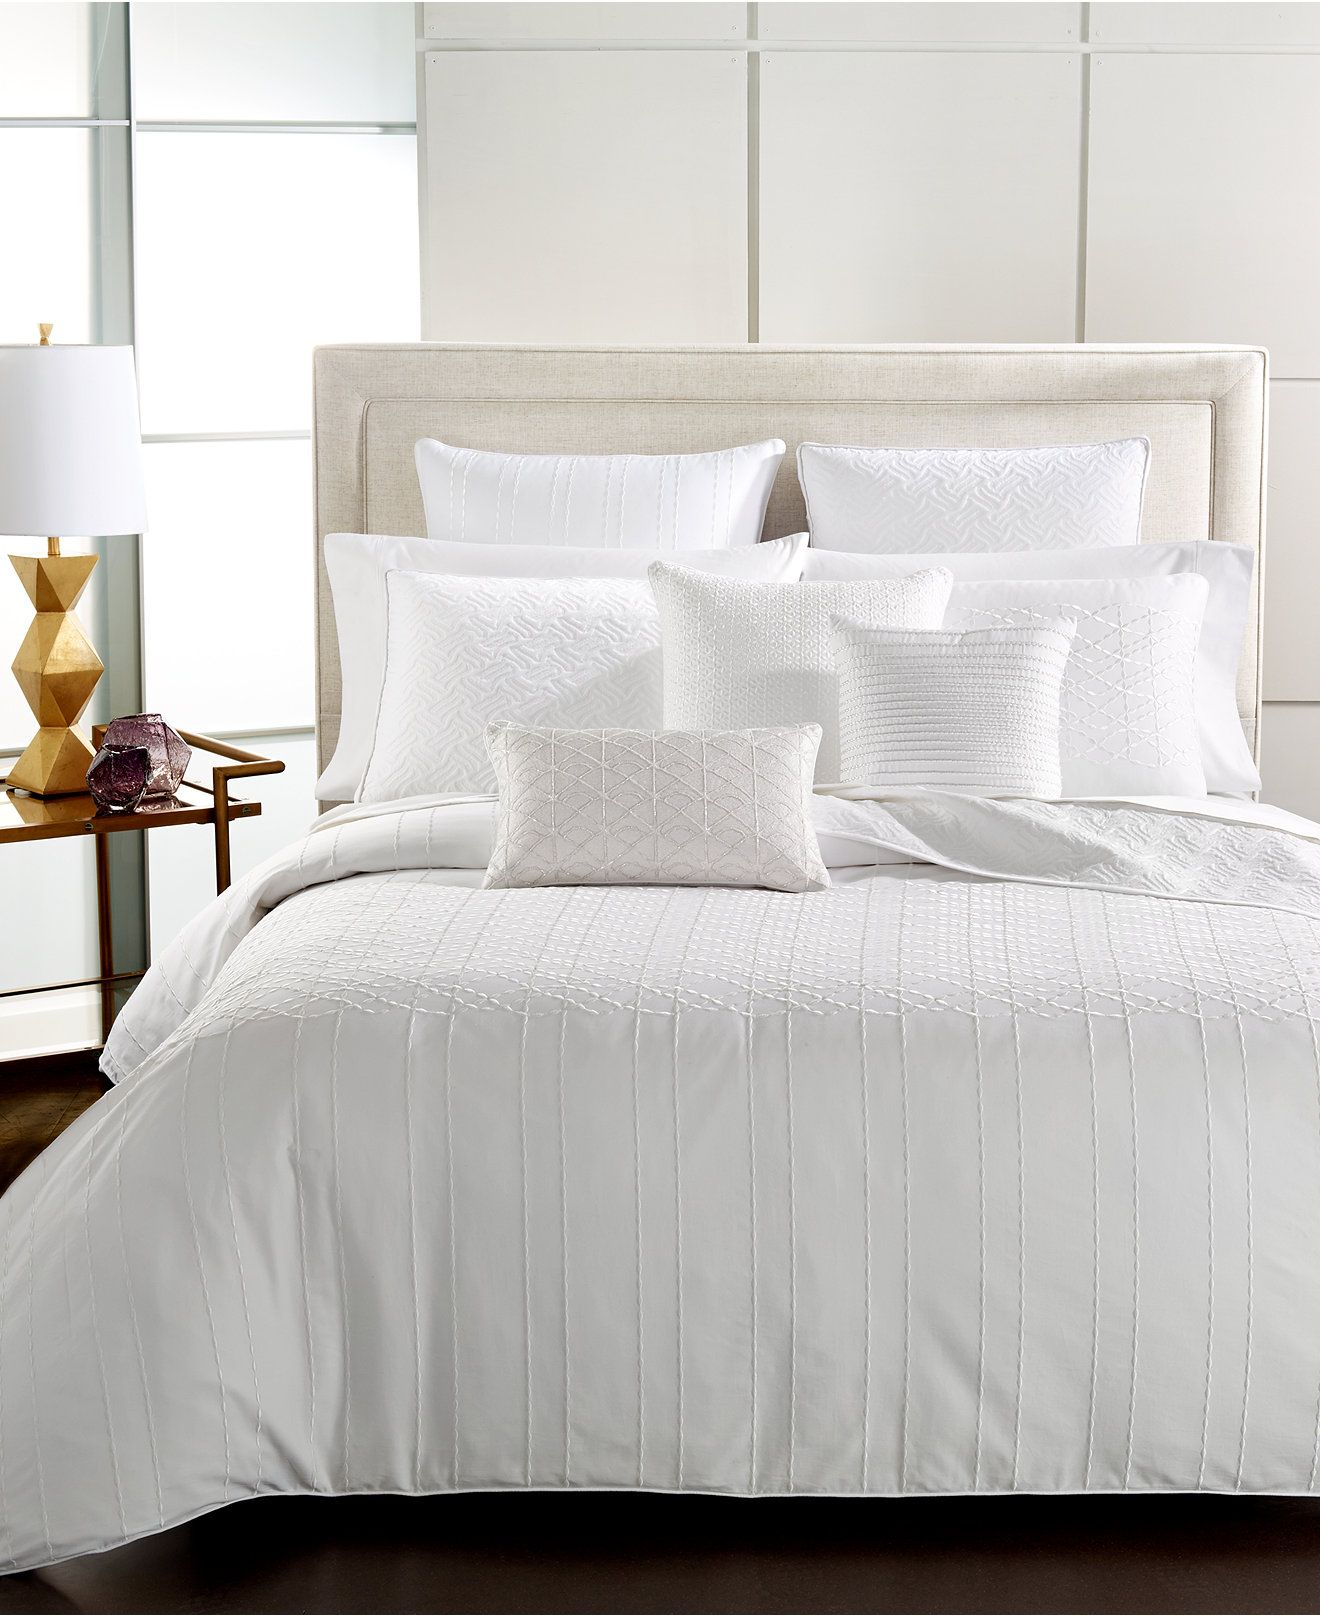 Hotel Bedding hotel bedding | home, colors and beds